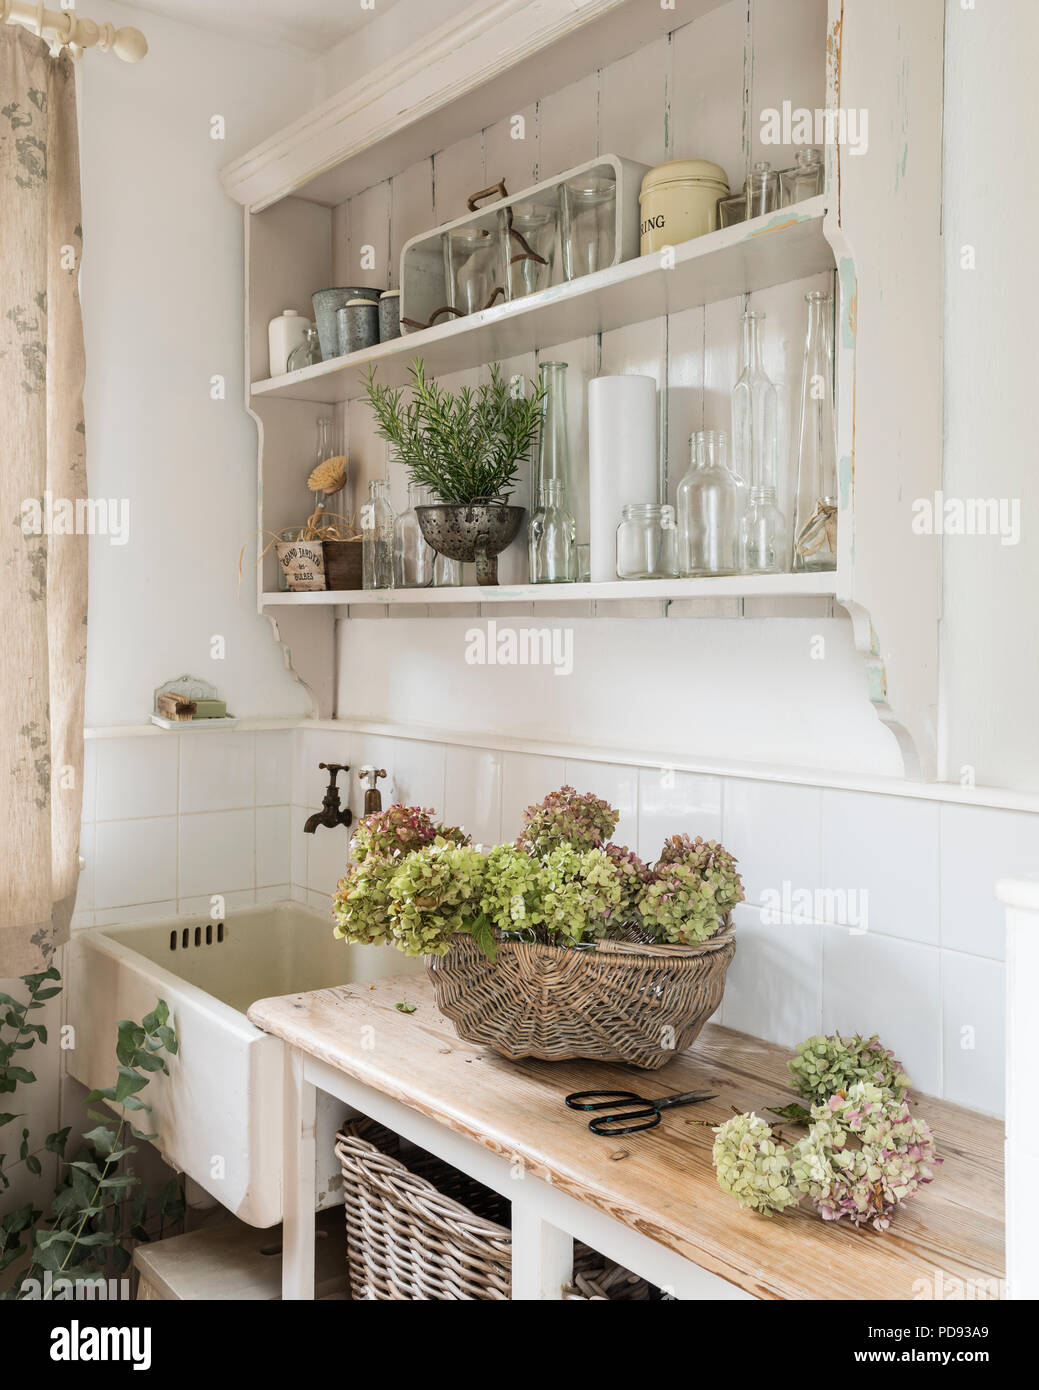 Dried hydrangea heads in corner of rustic style kitchen with ceramic sink and open wooden shelving - Stock Image